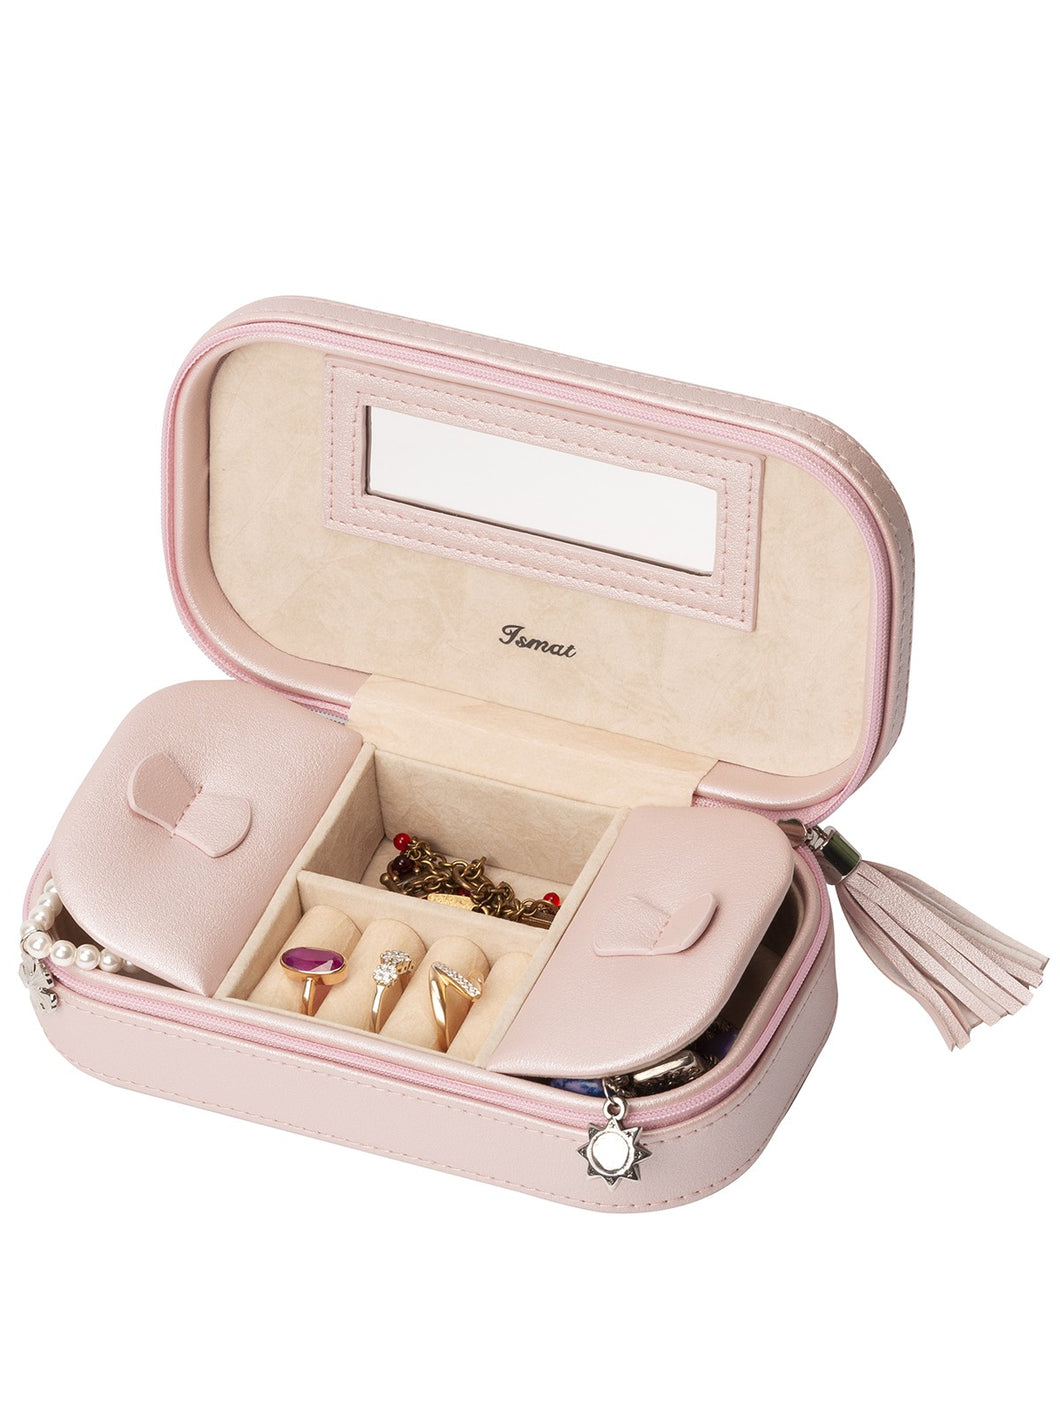 PETIT RÊVE Pink Travel Jewelry Case